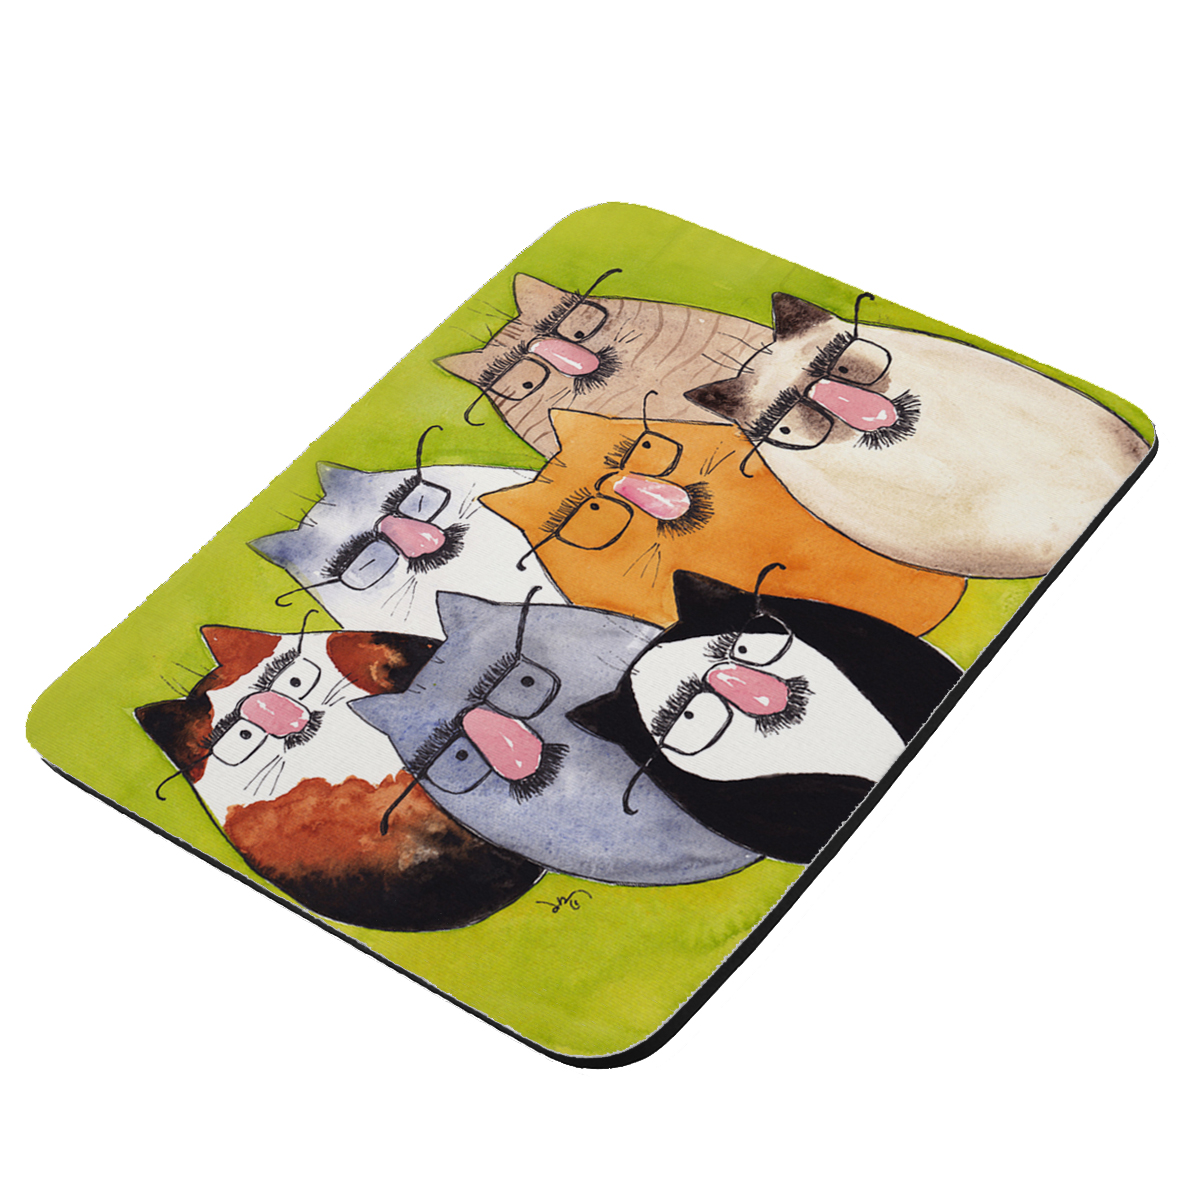 Seven Incognito Kitties Abstract Cat Art by Denise Every - KuzmarK Mousepad / Hot Pad / Trivet